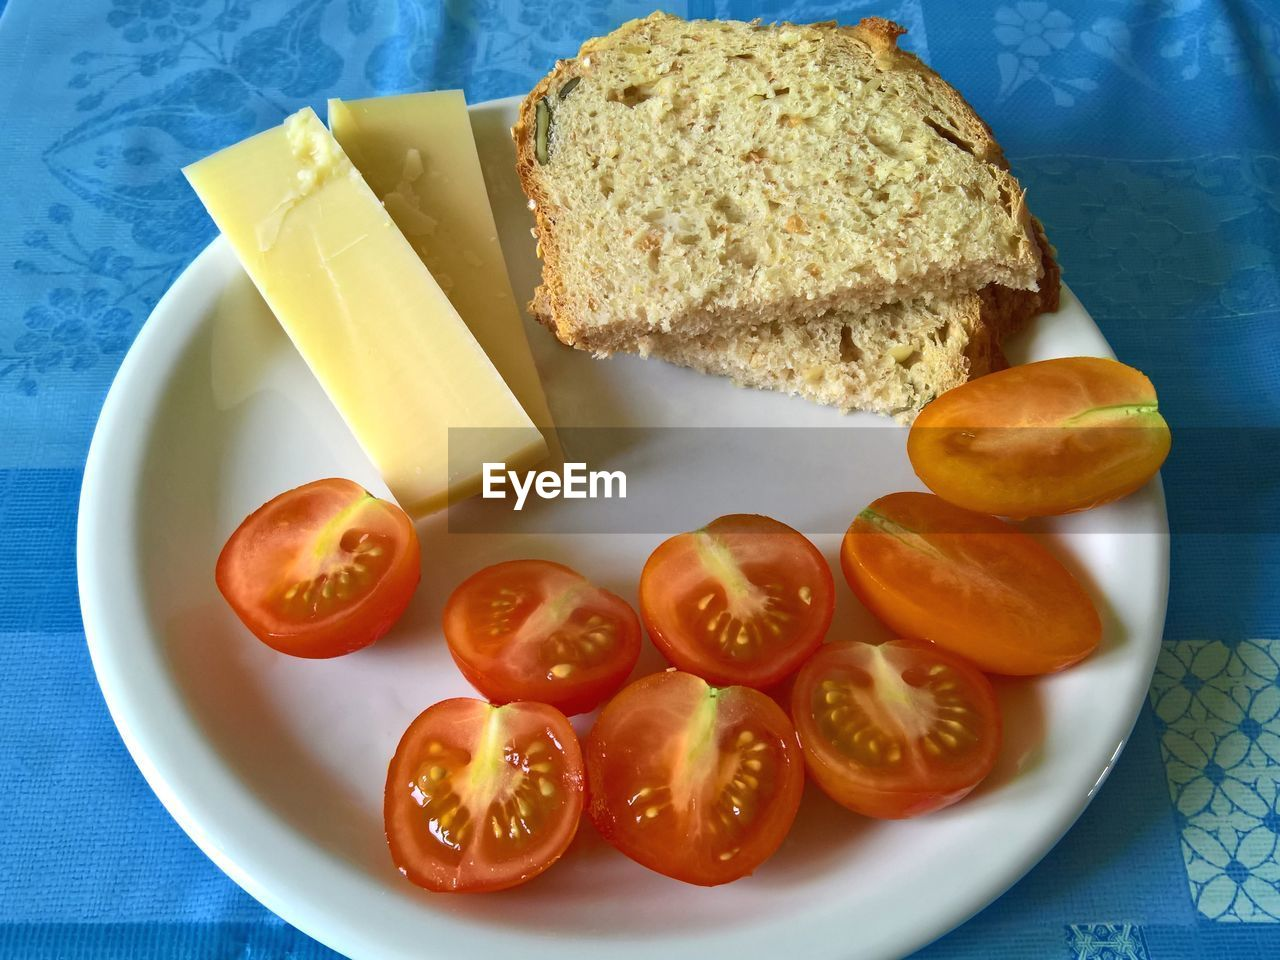 food, food and drink, bread, healthy eating, plate, freshness, wellbeing, still life, fruit, indoors, slice, tomato, no people, table, ready-to-eat, high angle view, dairy product, meal, vegetable, breakfast, snack